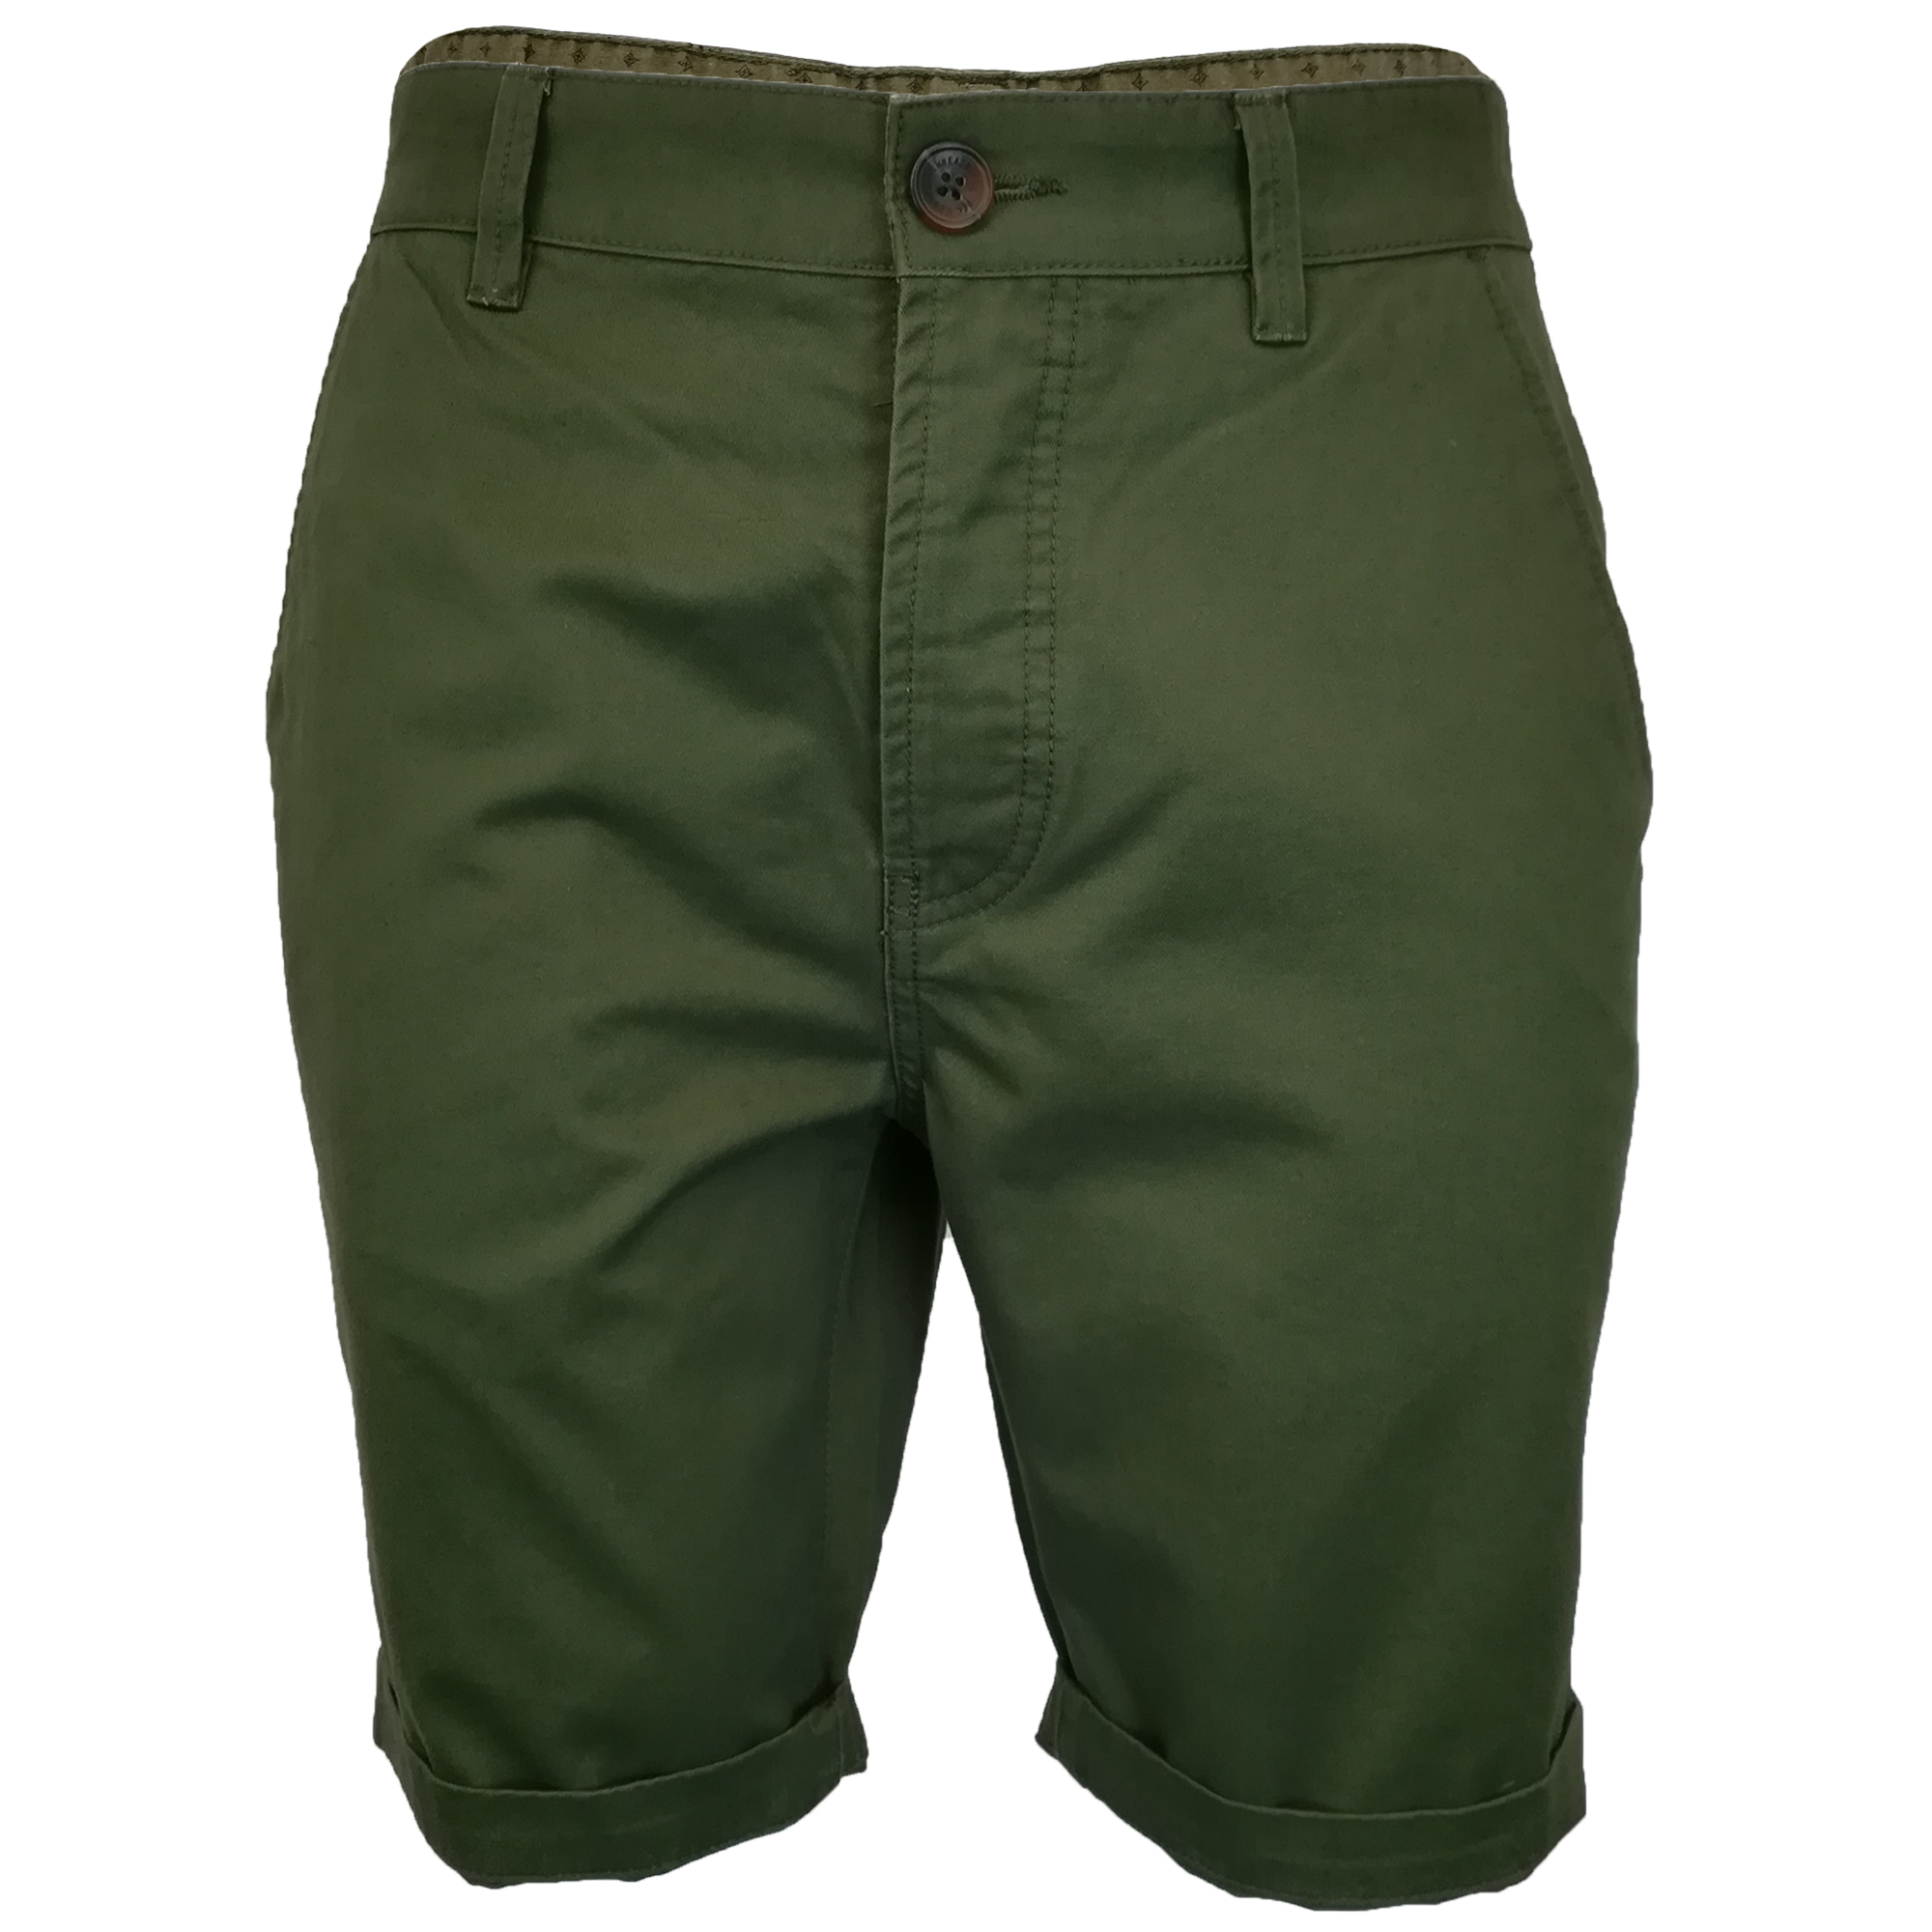 Mens-Chino-Shorts-Threadbare-Pants-Westace-Stallion-Knee-Length-Roll-Up-Summer thumbnail 20